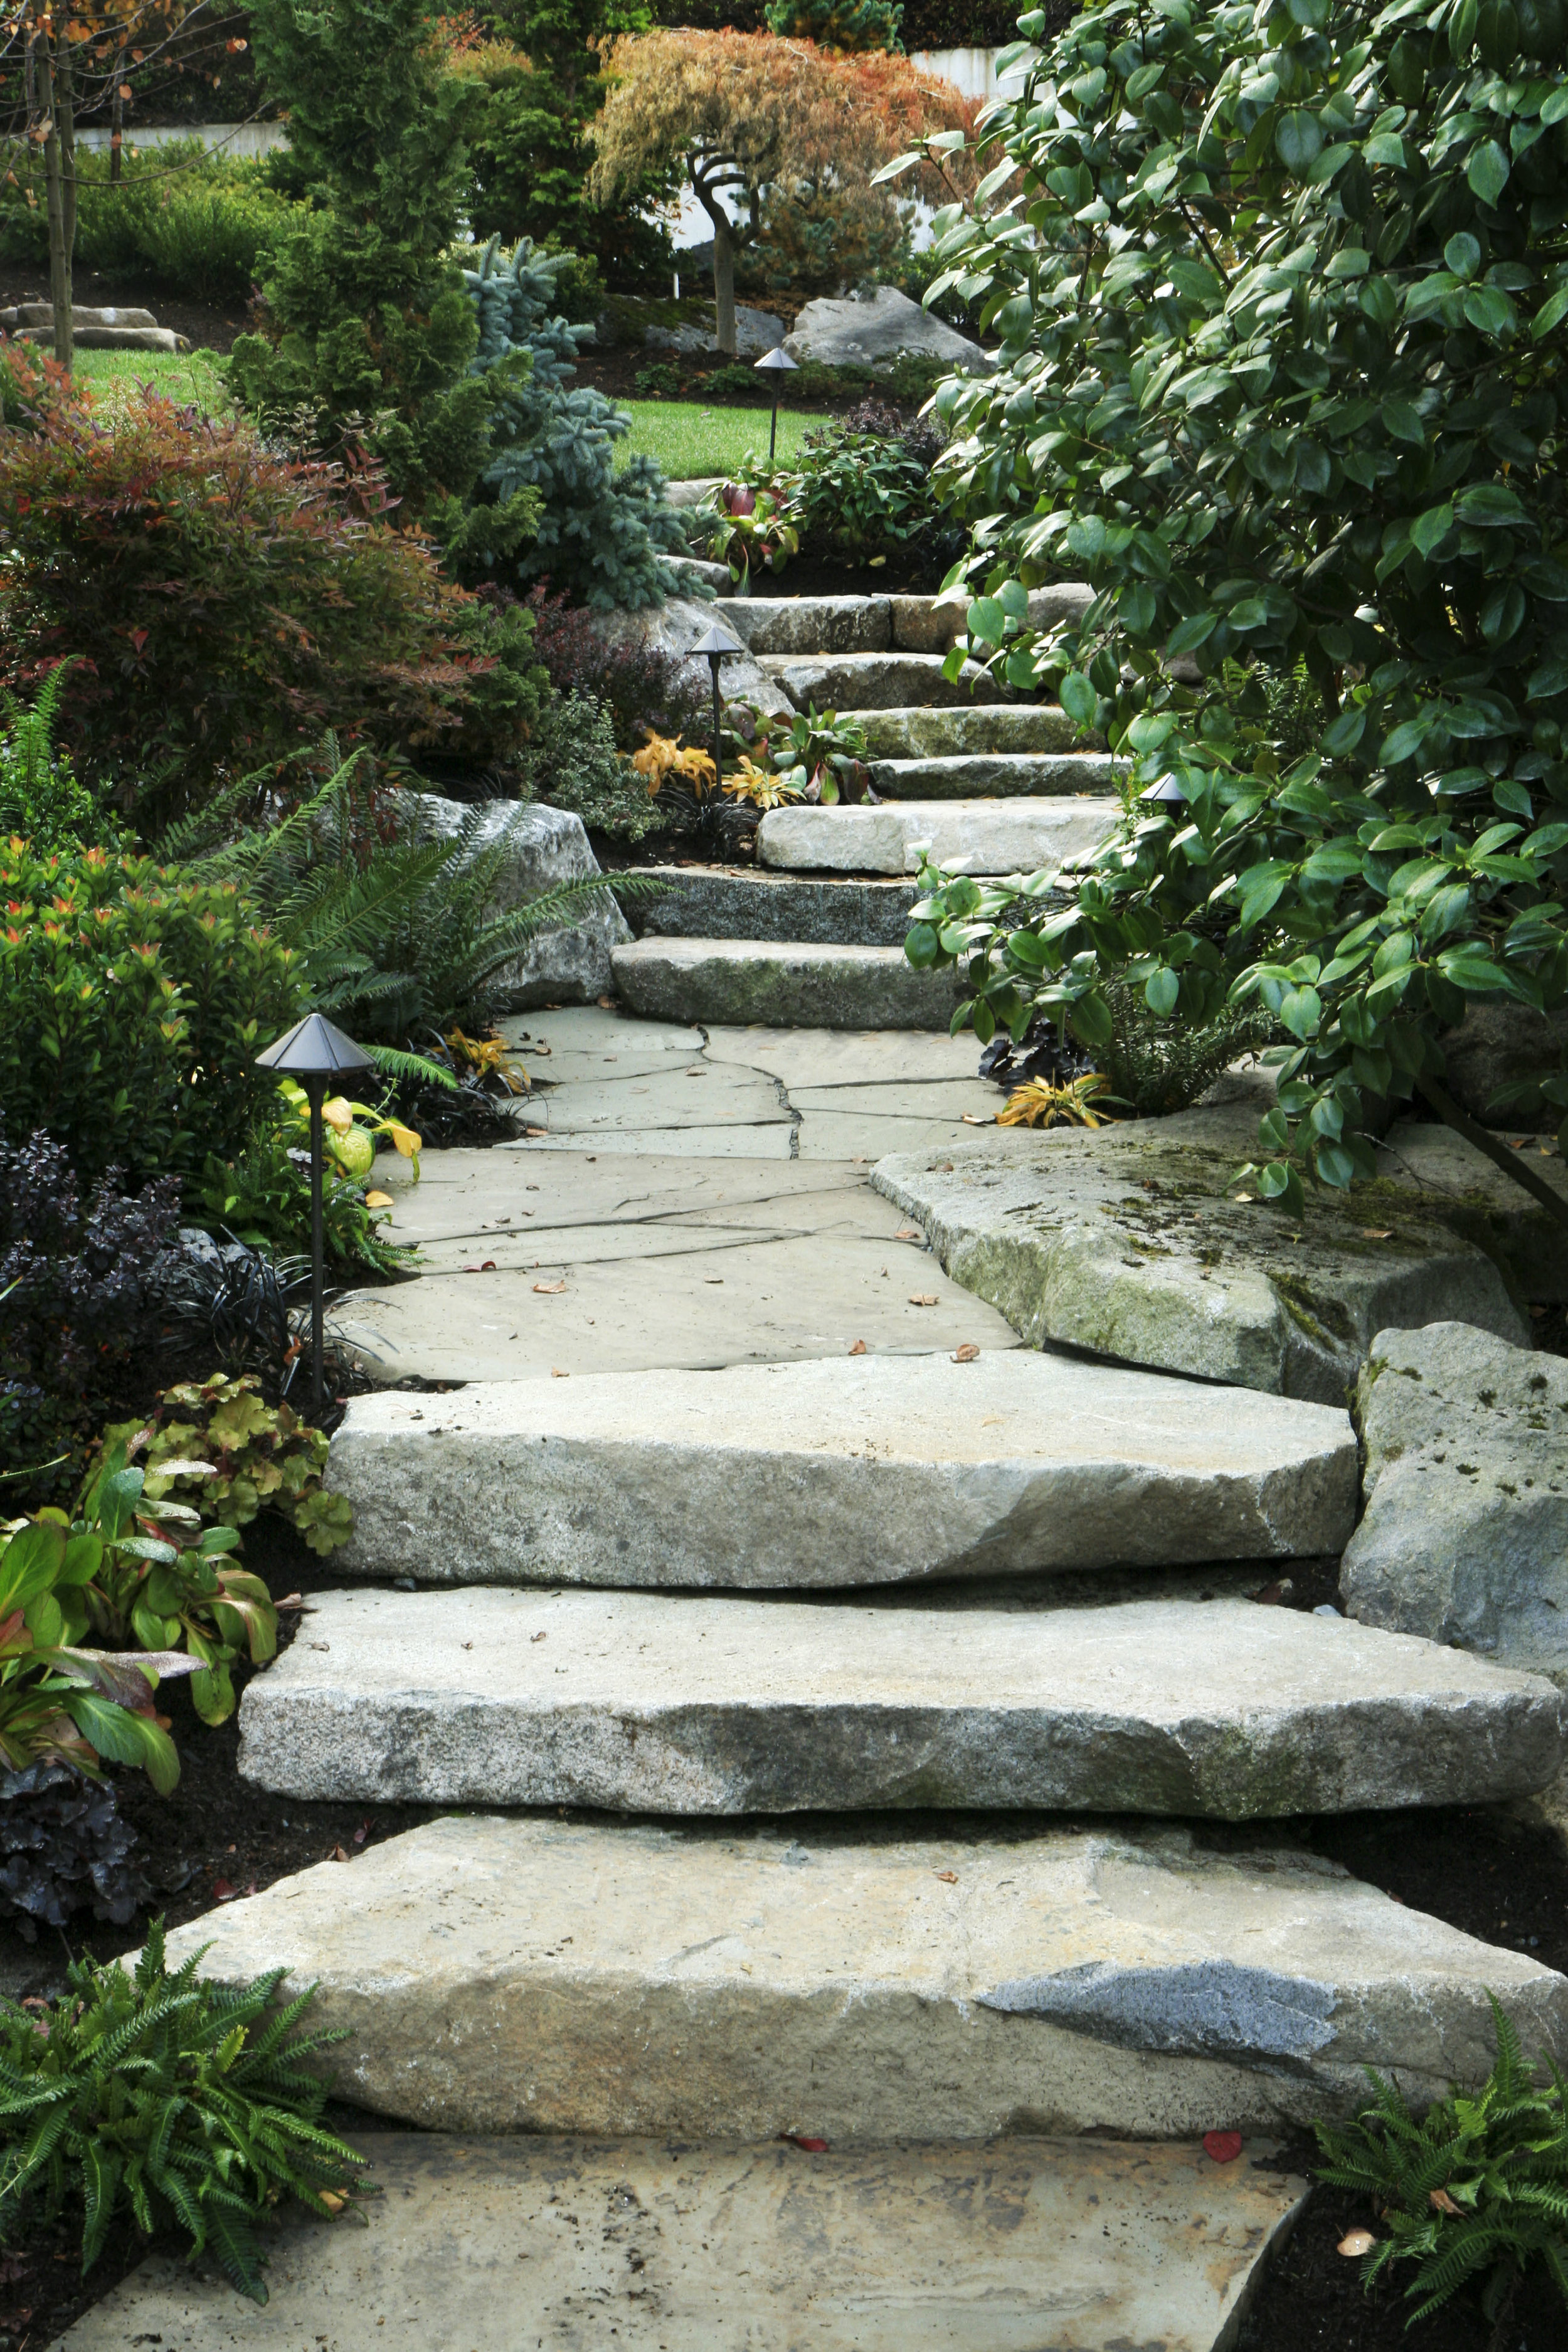 28poore stone steps-3 - edited-Recovered_1.jpg